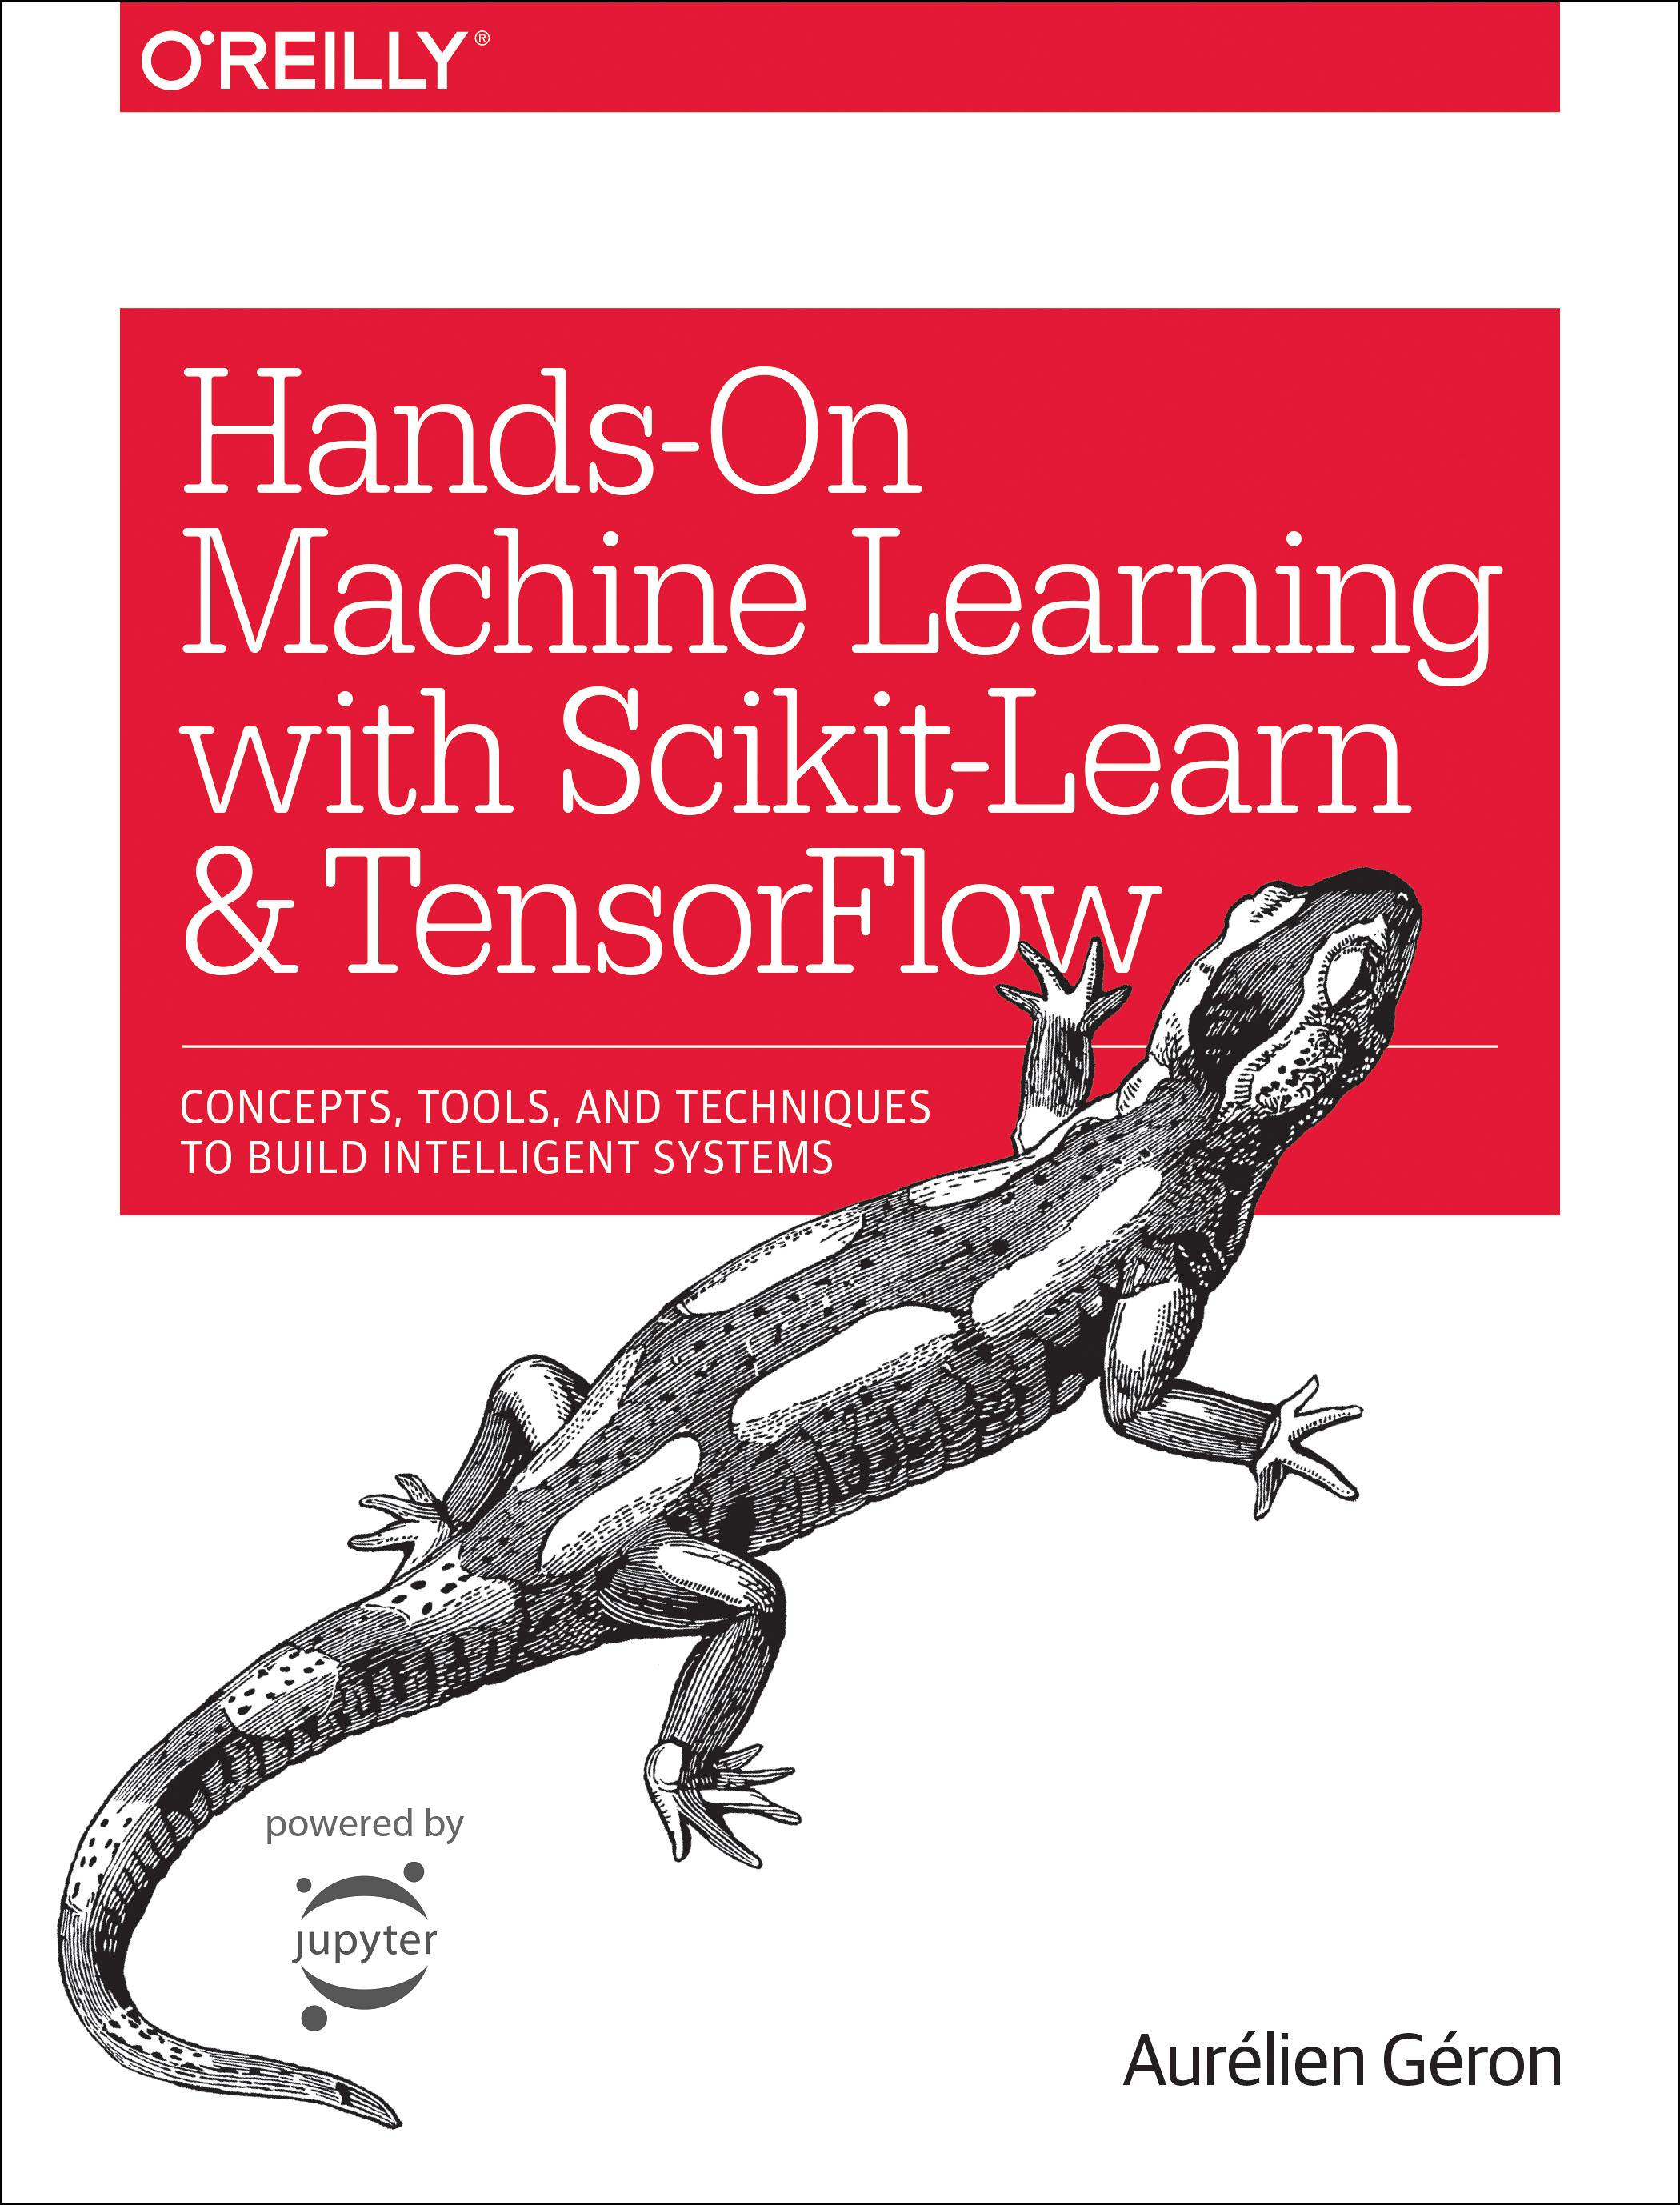 Machine Learning with Scikit-Learn & Tensorflow